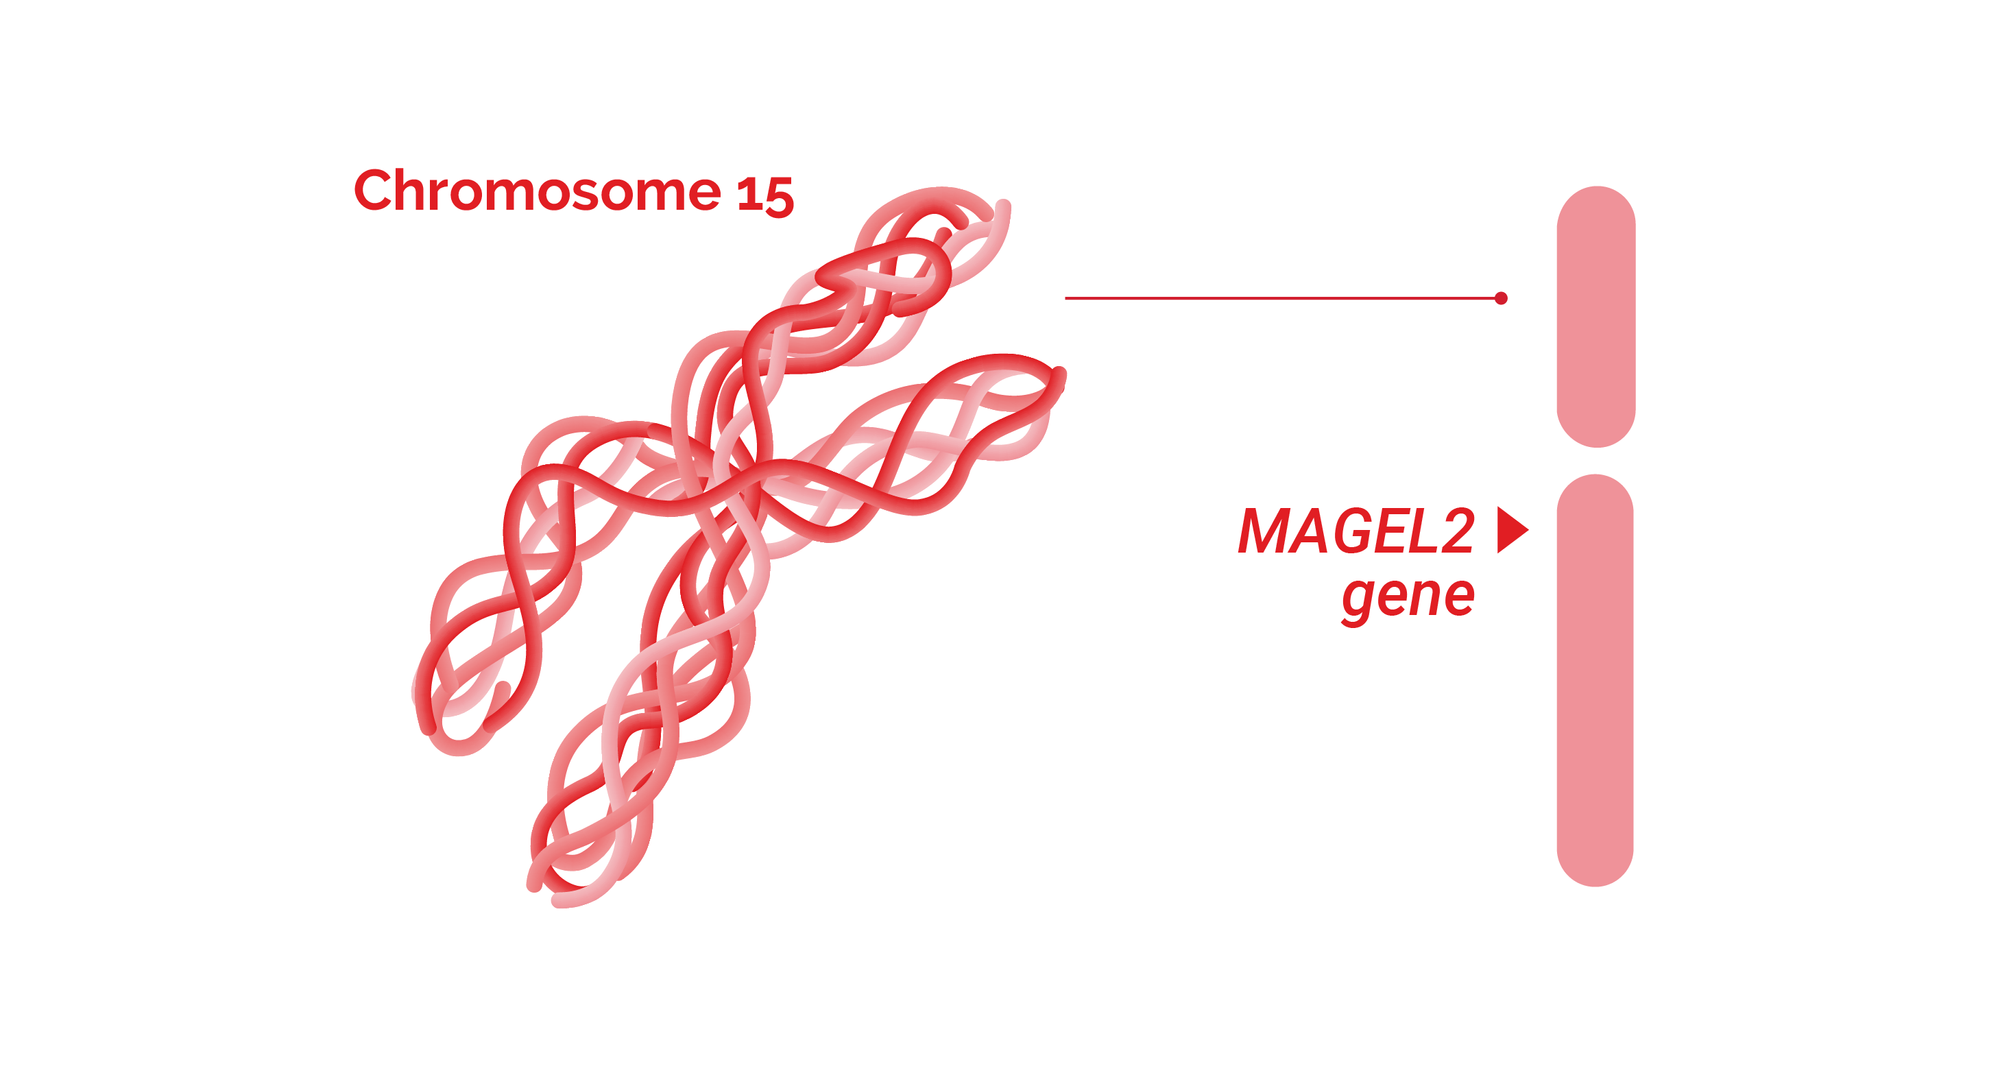 Schaaf-Yang syndrome related MAGEL2 gene is located on chromosome 15.